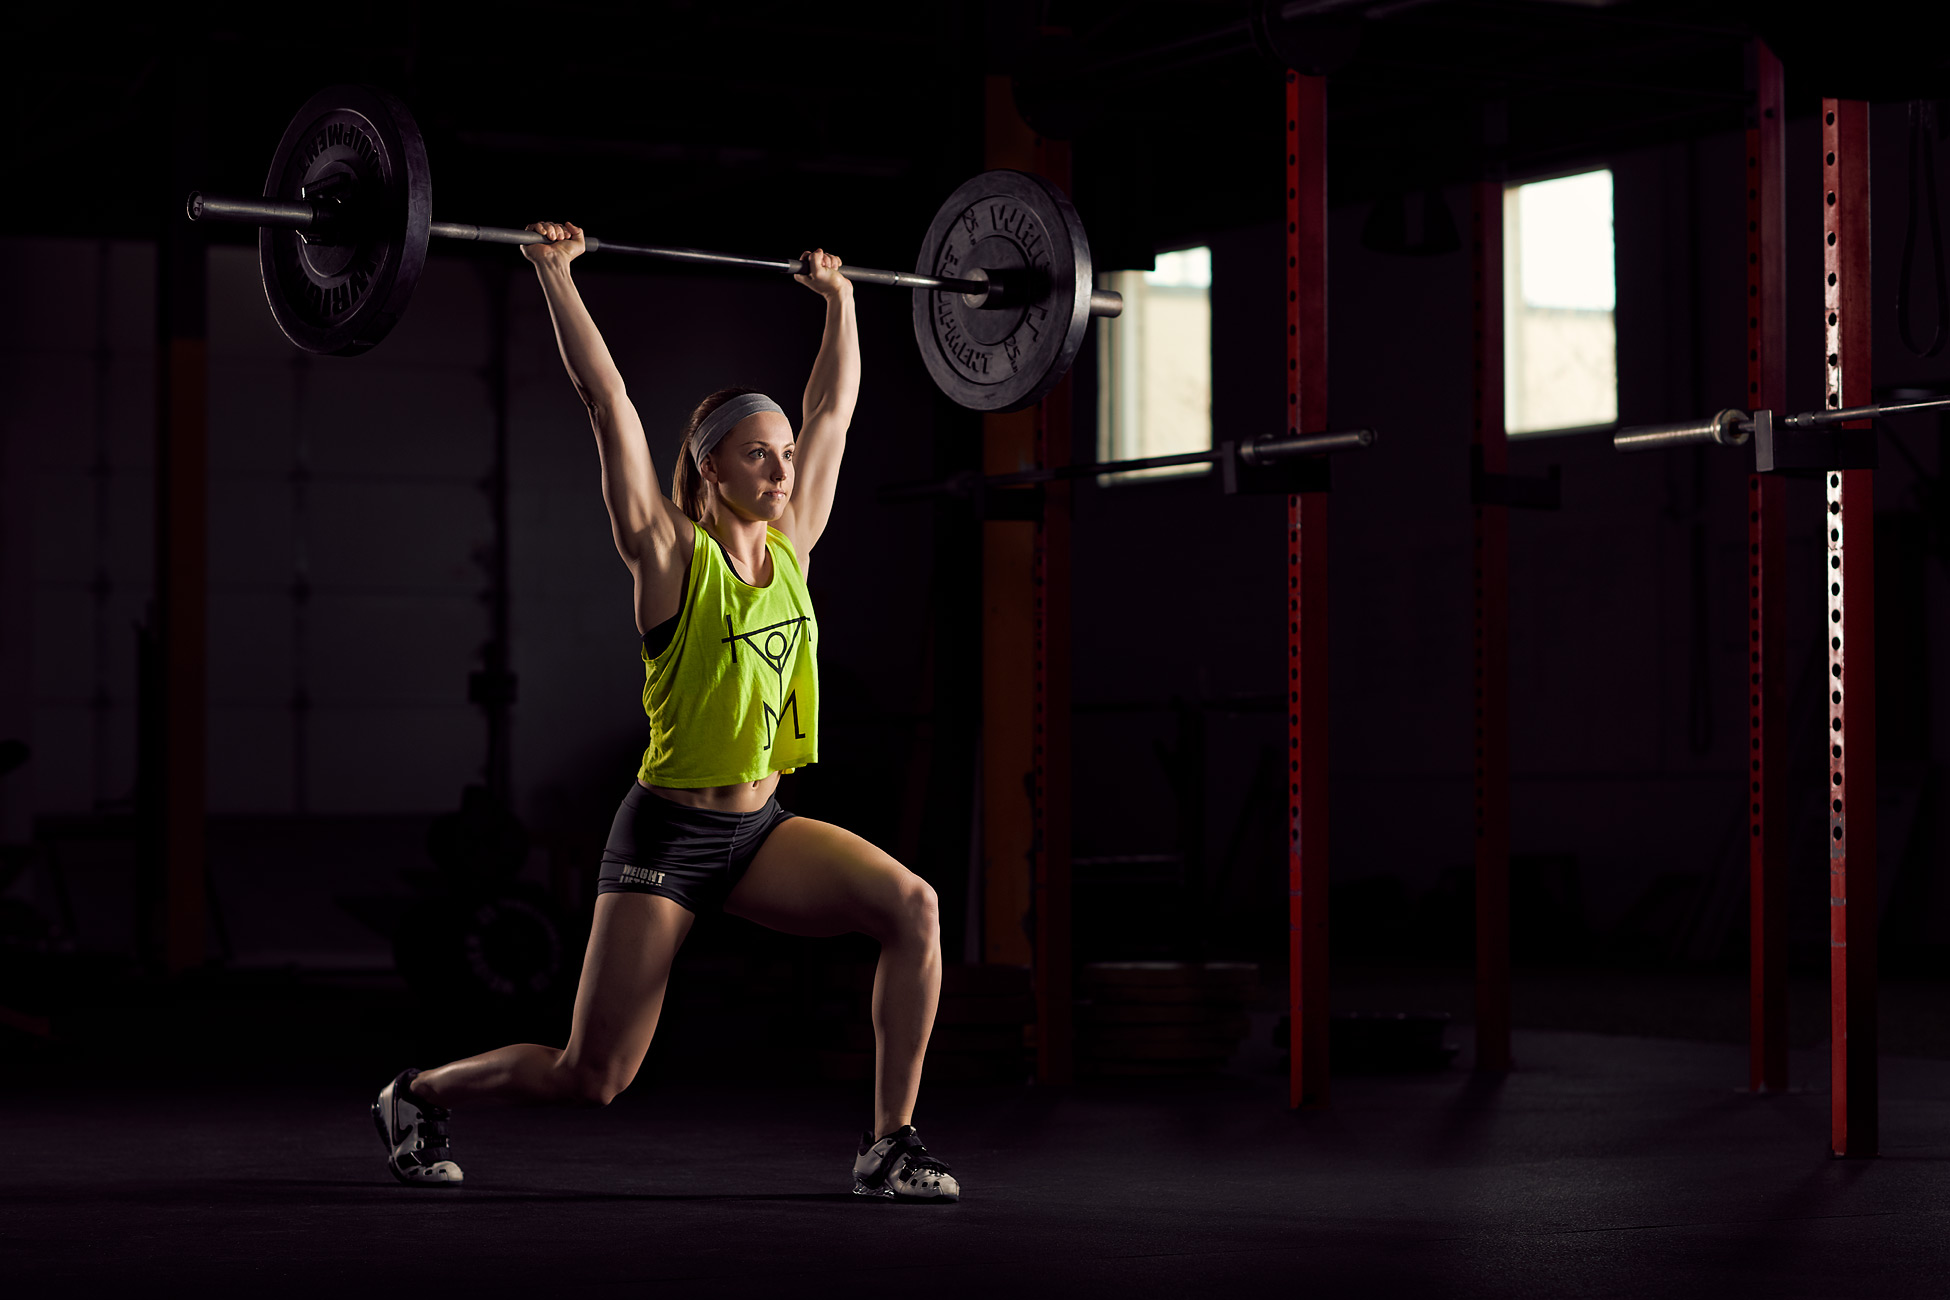 Woman Olympic Weight Lifter in dark gym in St. Louis, Missouri.